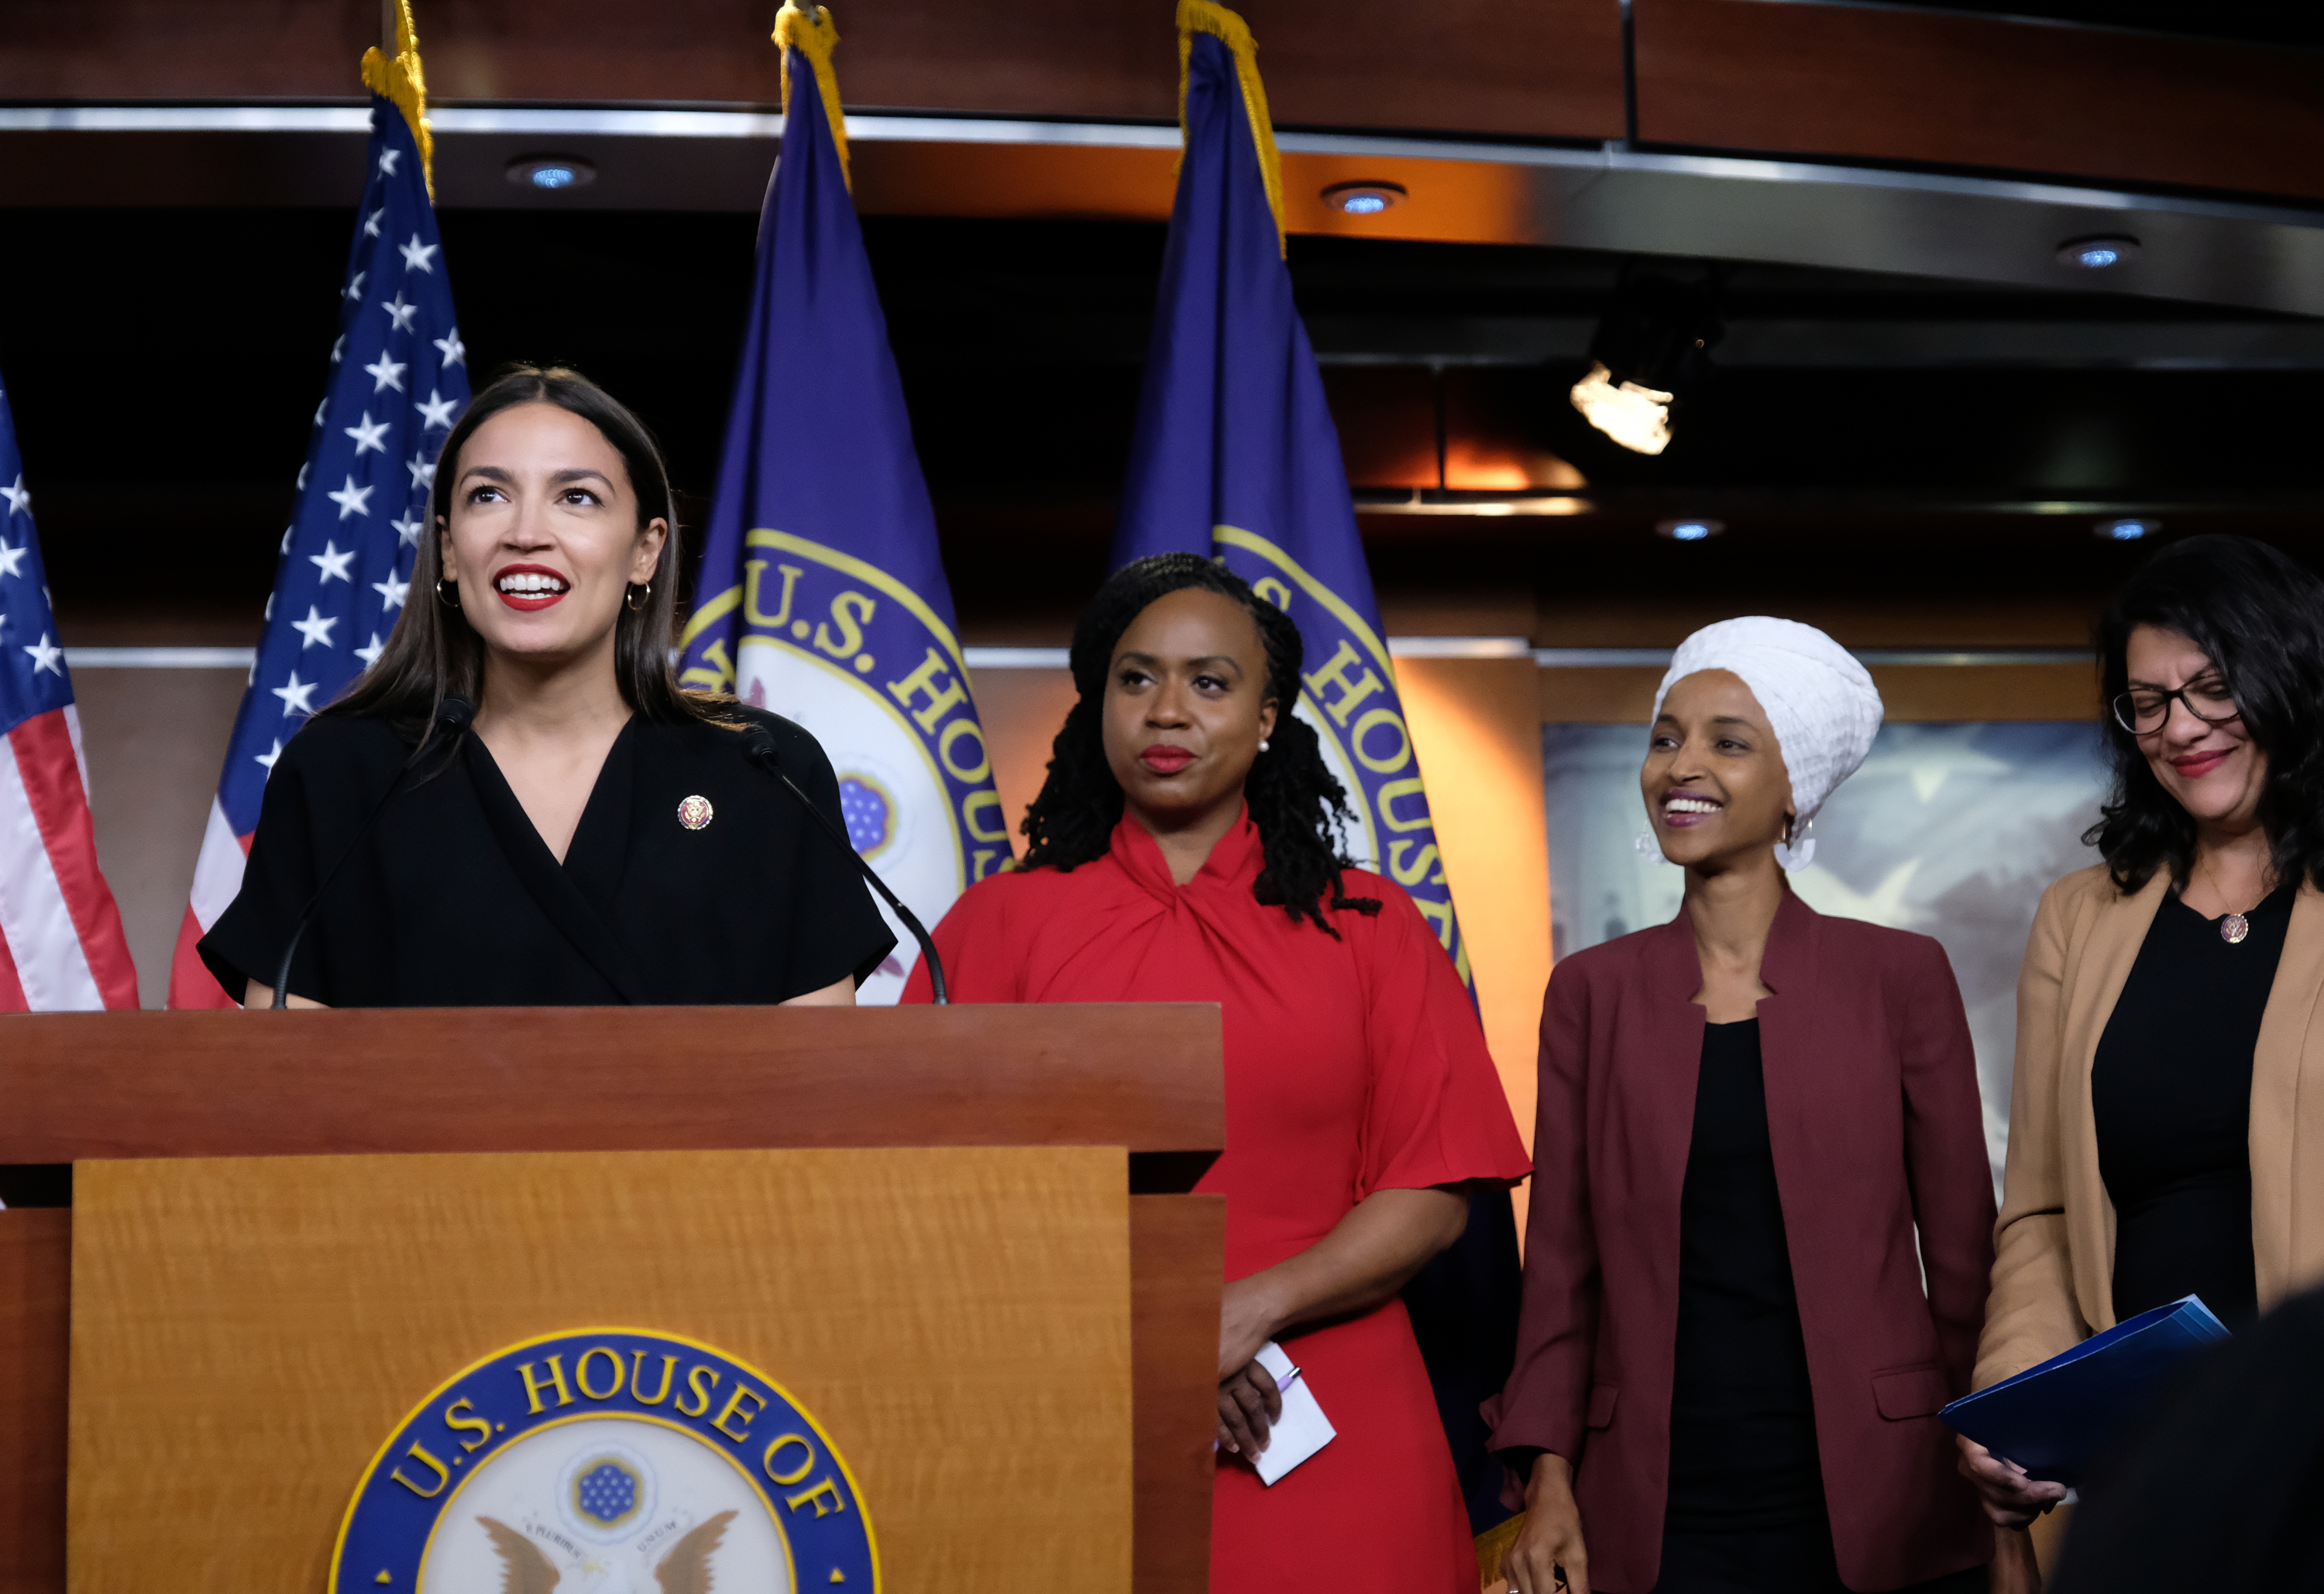 "U.S. Rep. Alexandria Ocasio-Cortez (D-NY) speaks as Reps. Ayanna Pressley (D-MA), Ilhan Omar (D-MN), and Rashida Tlaib (D-MI) listen during a press conference at the U.S. Capitol on July 15, 2019 in Washington, DC. President Donald Trump stepped up his attacks on four progressive Democratic congresswomen, saying if they're not happy in the United States ""they can leave."" (Photo by Alex Wroblewski/Getty Images)"